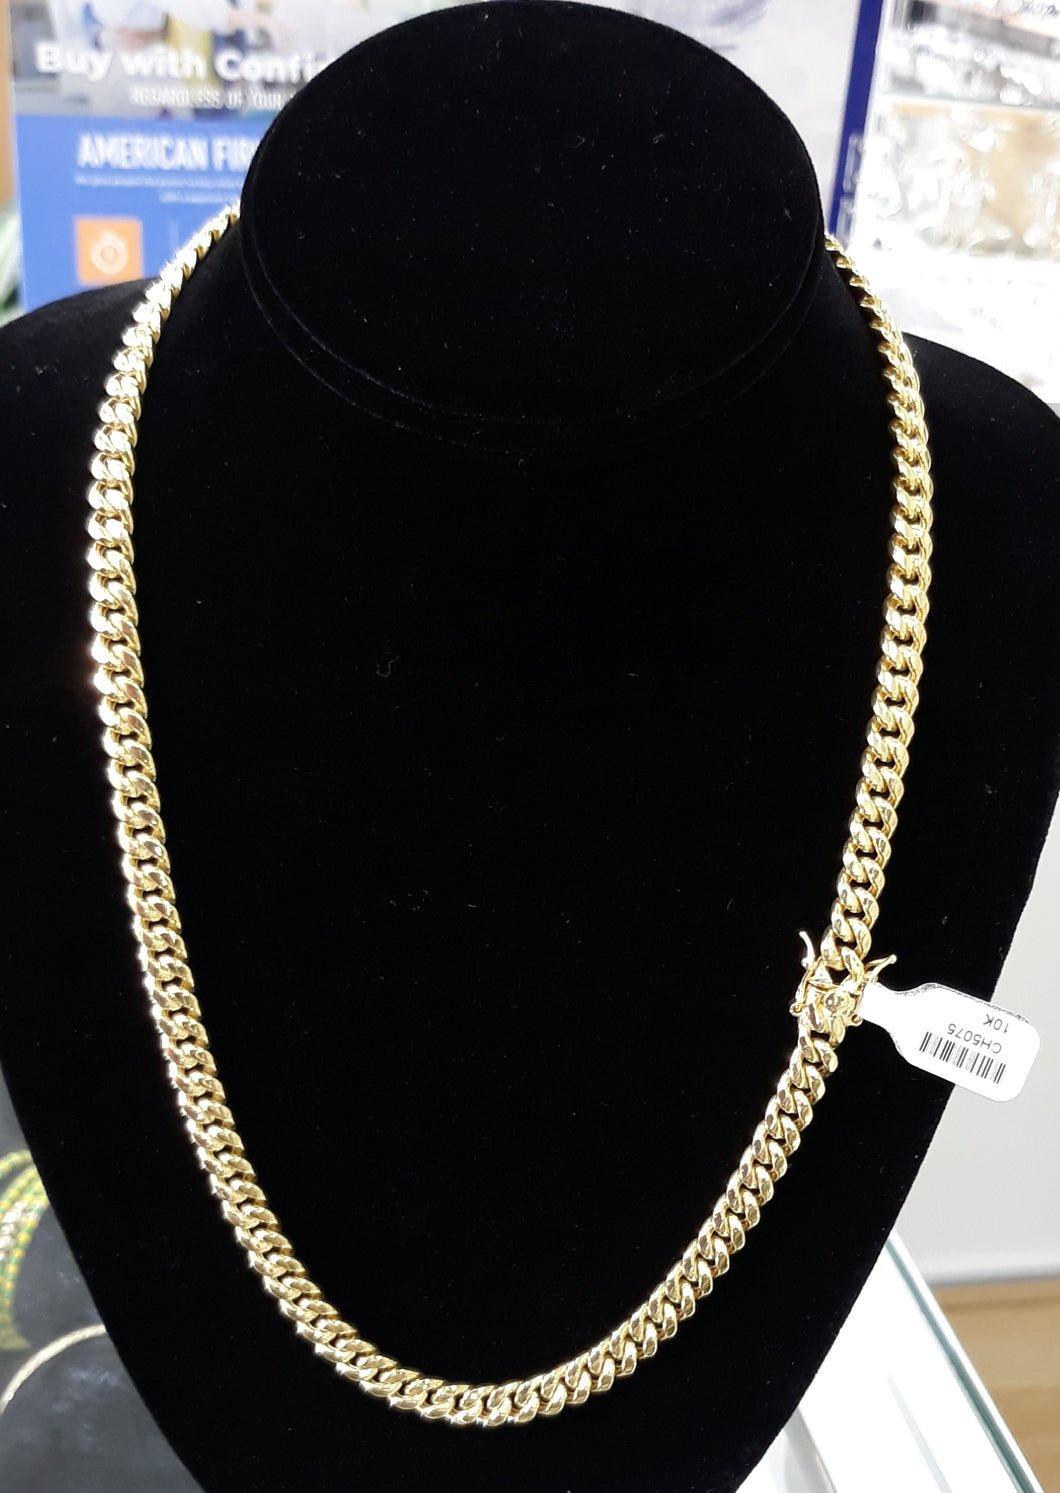 8mm 10k Real Gold Cuban link Hollow Chain 35grams